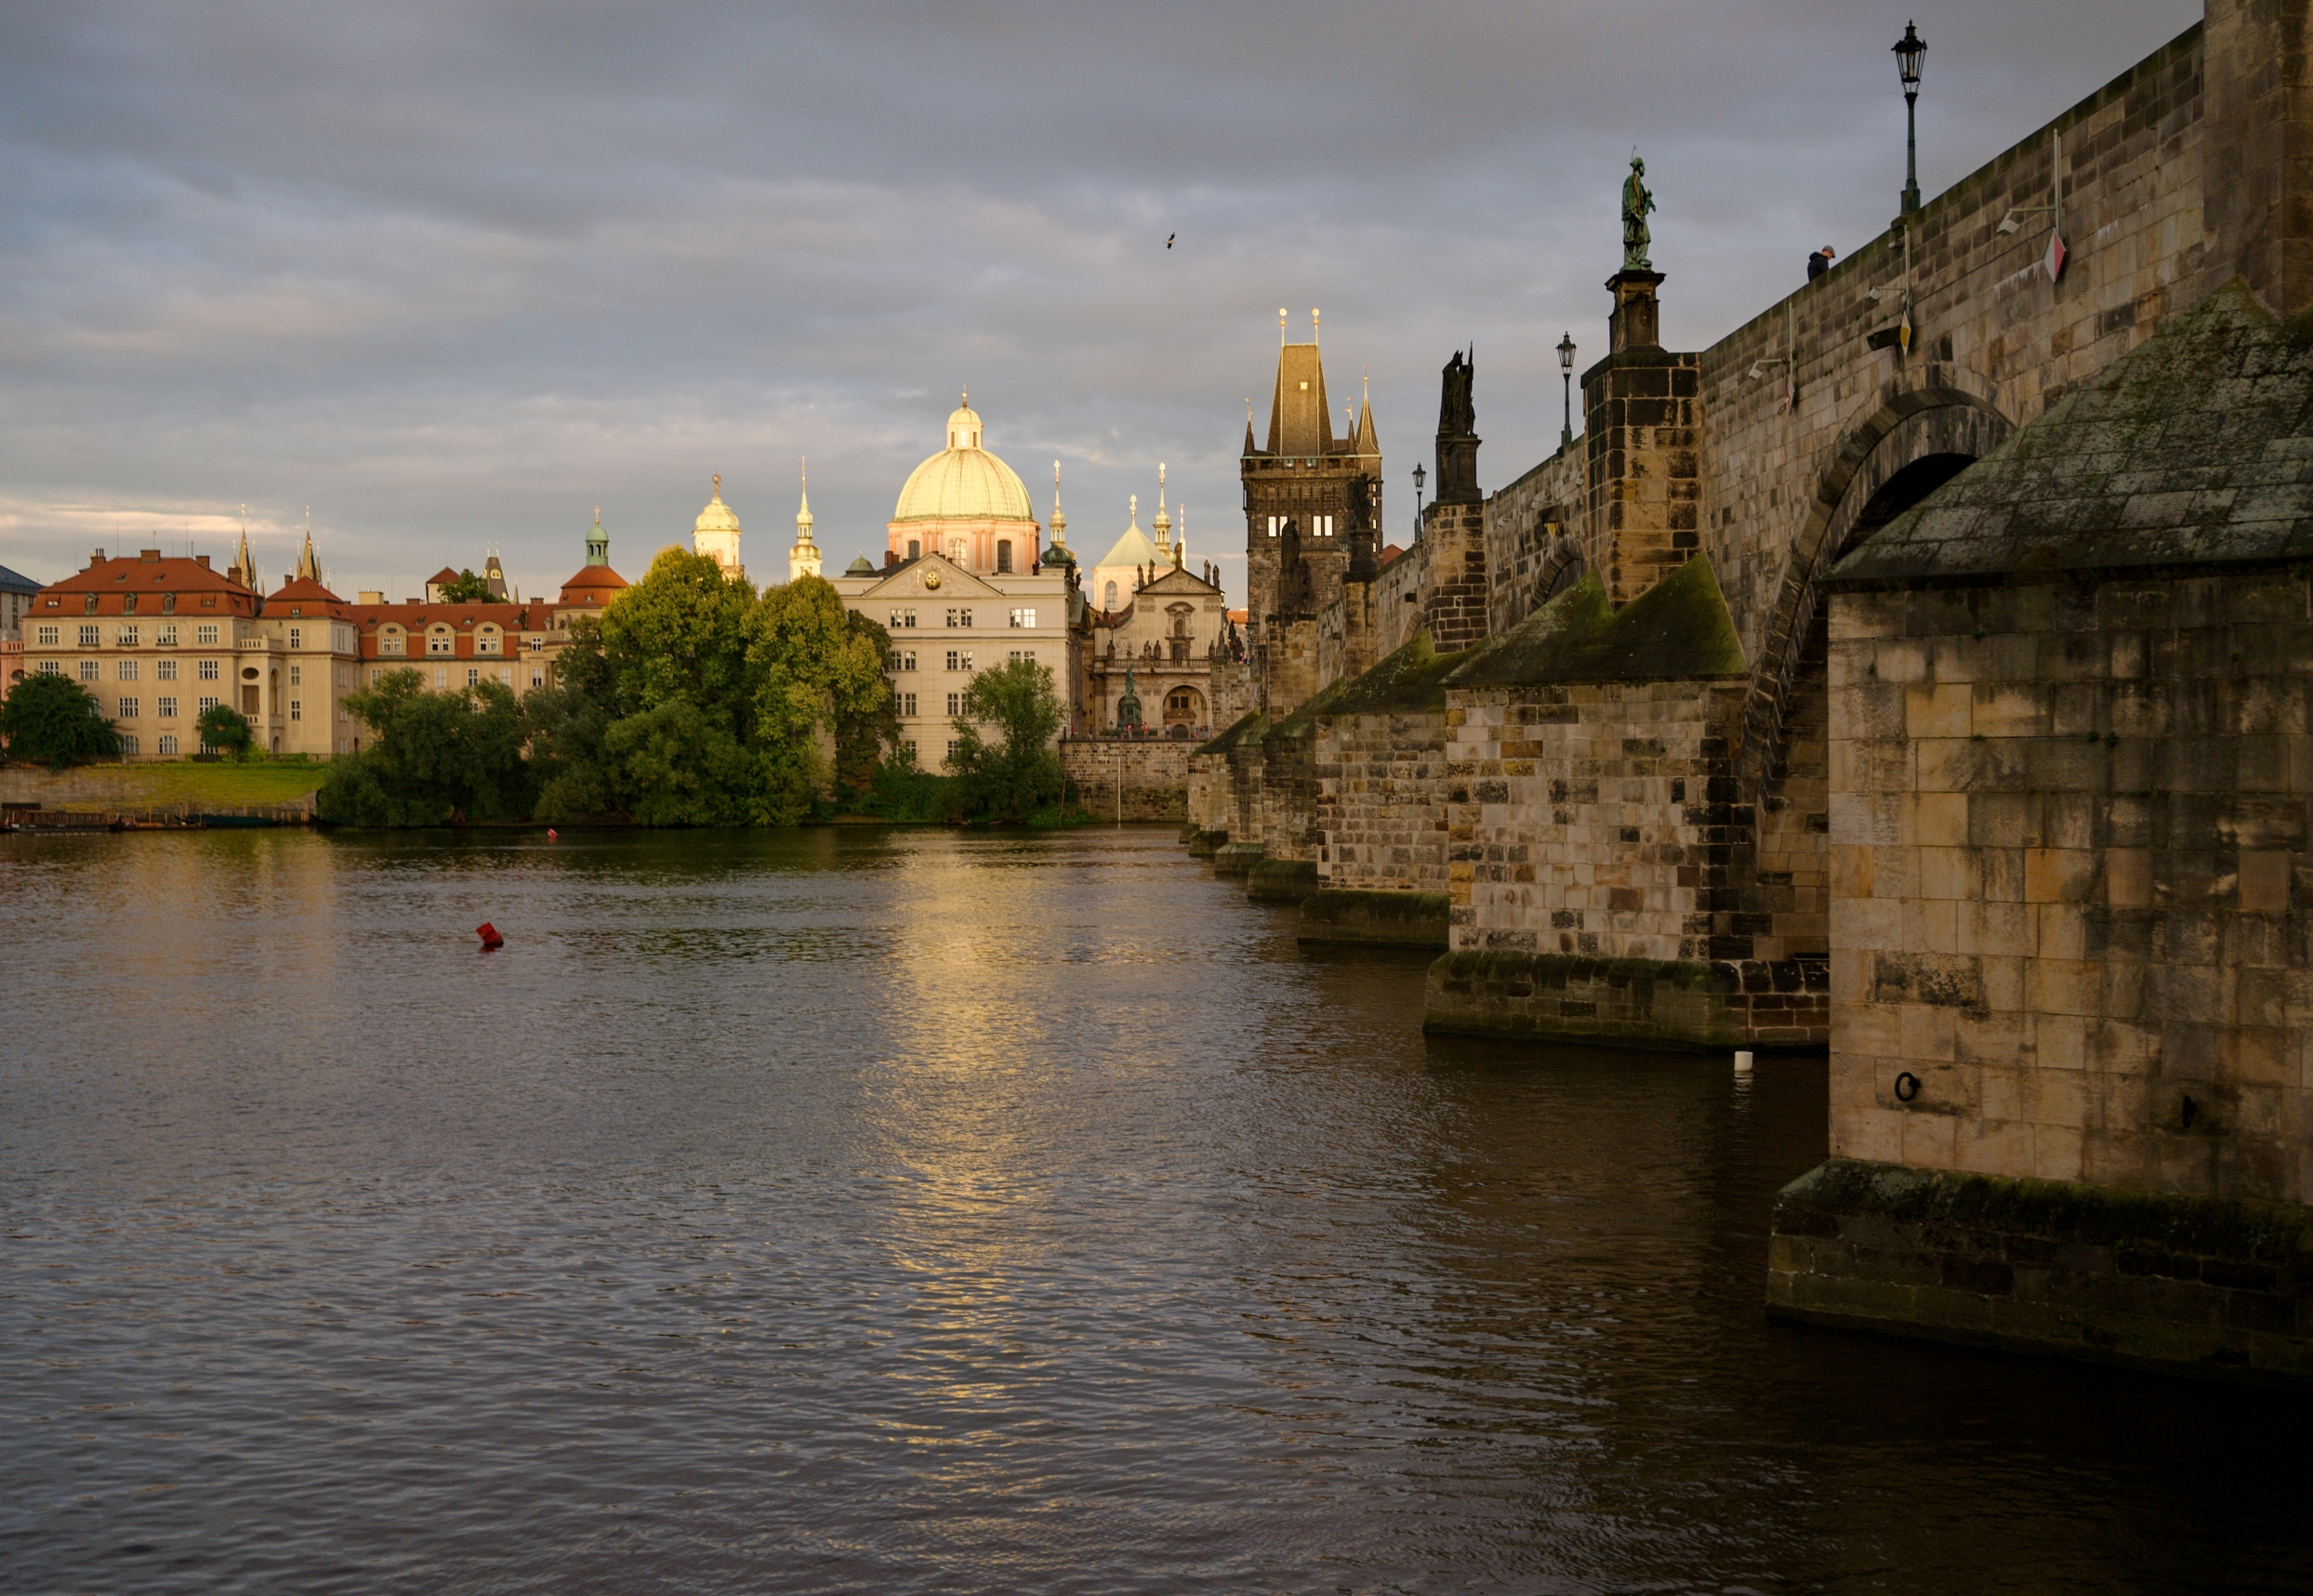 Charles Bridge, Church of St Francis Seraph